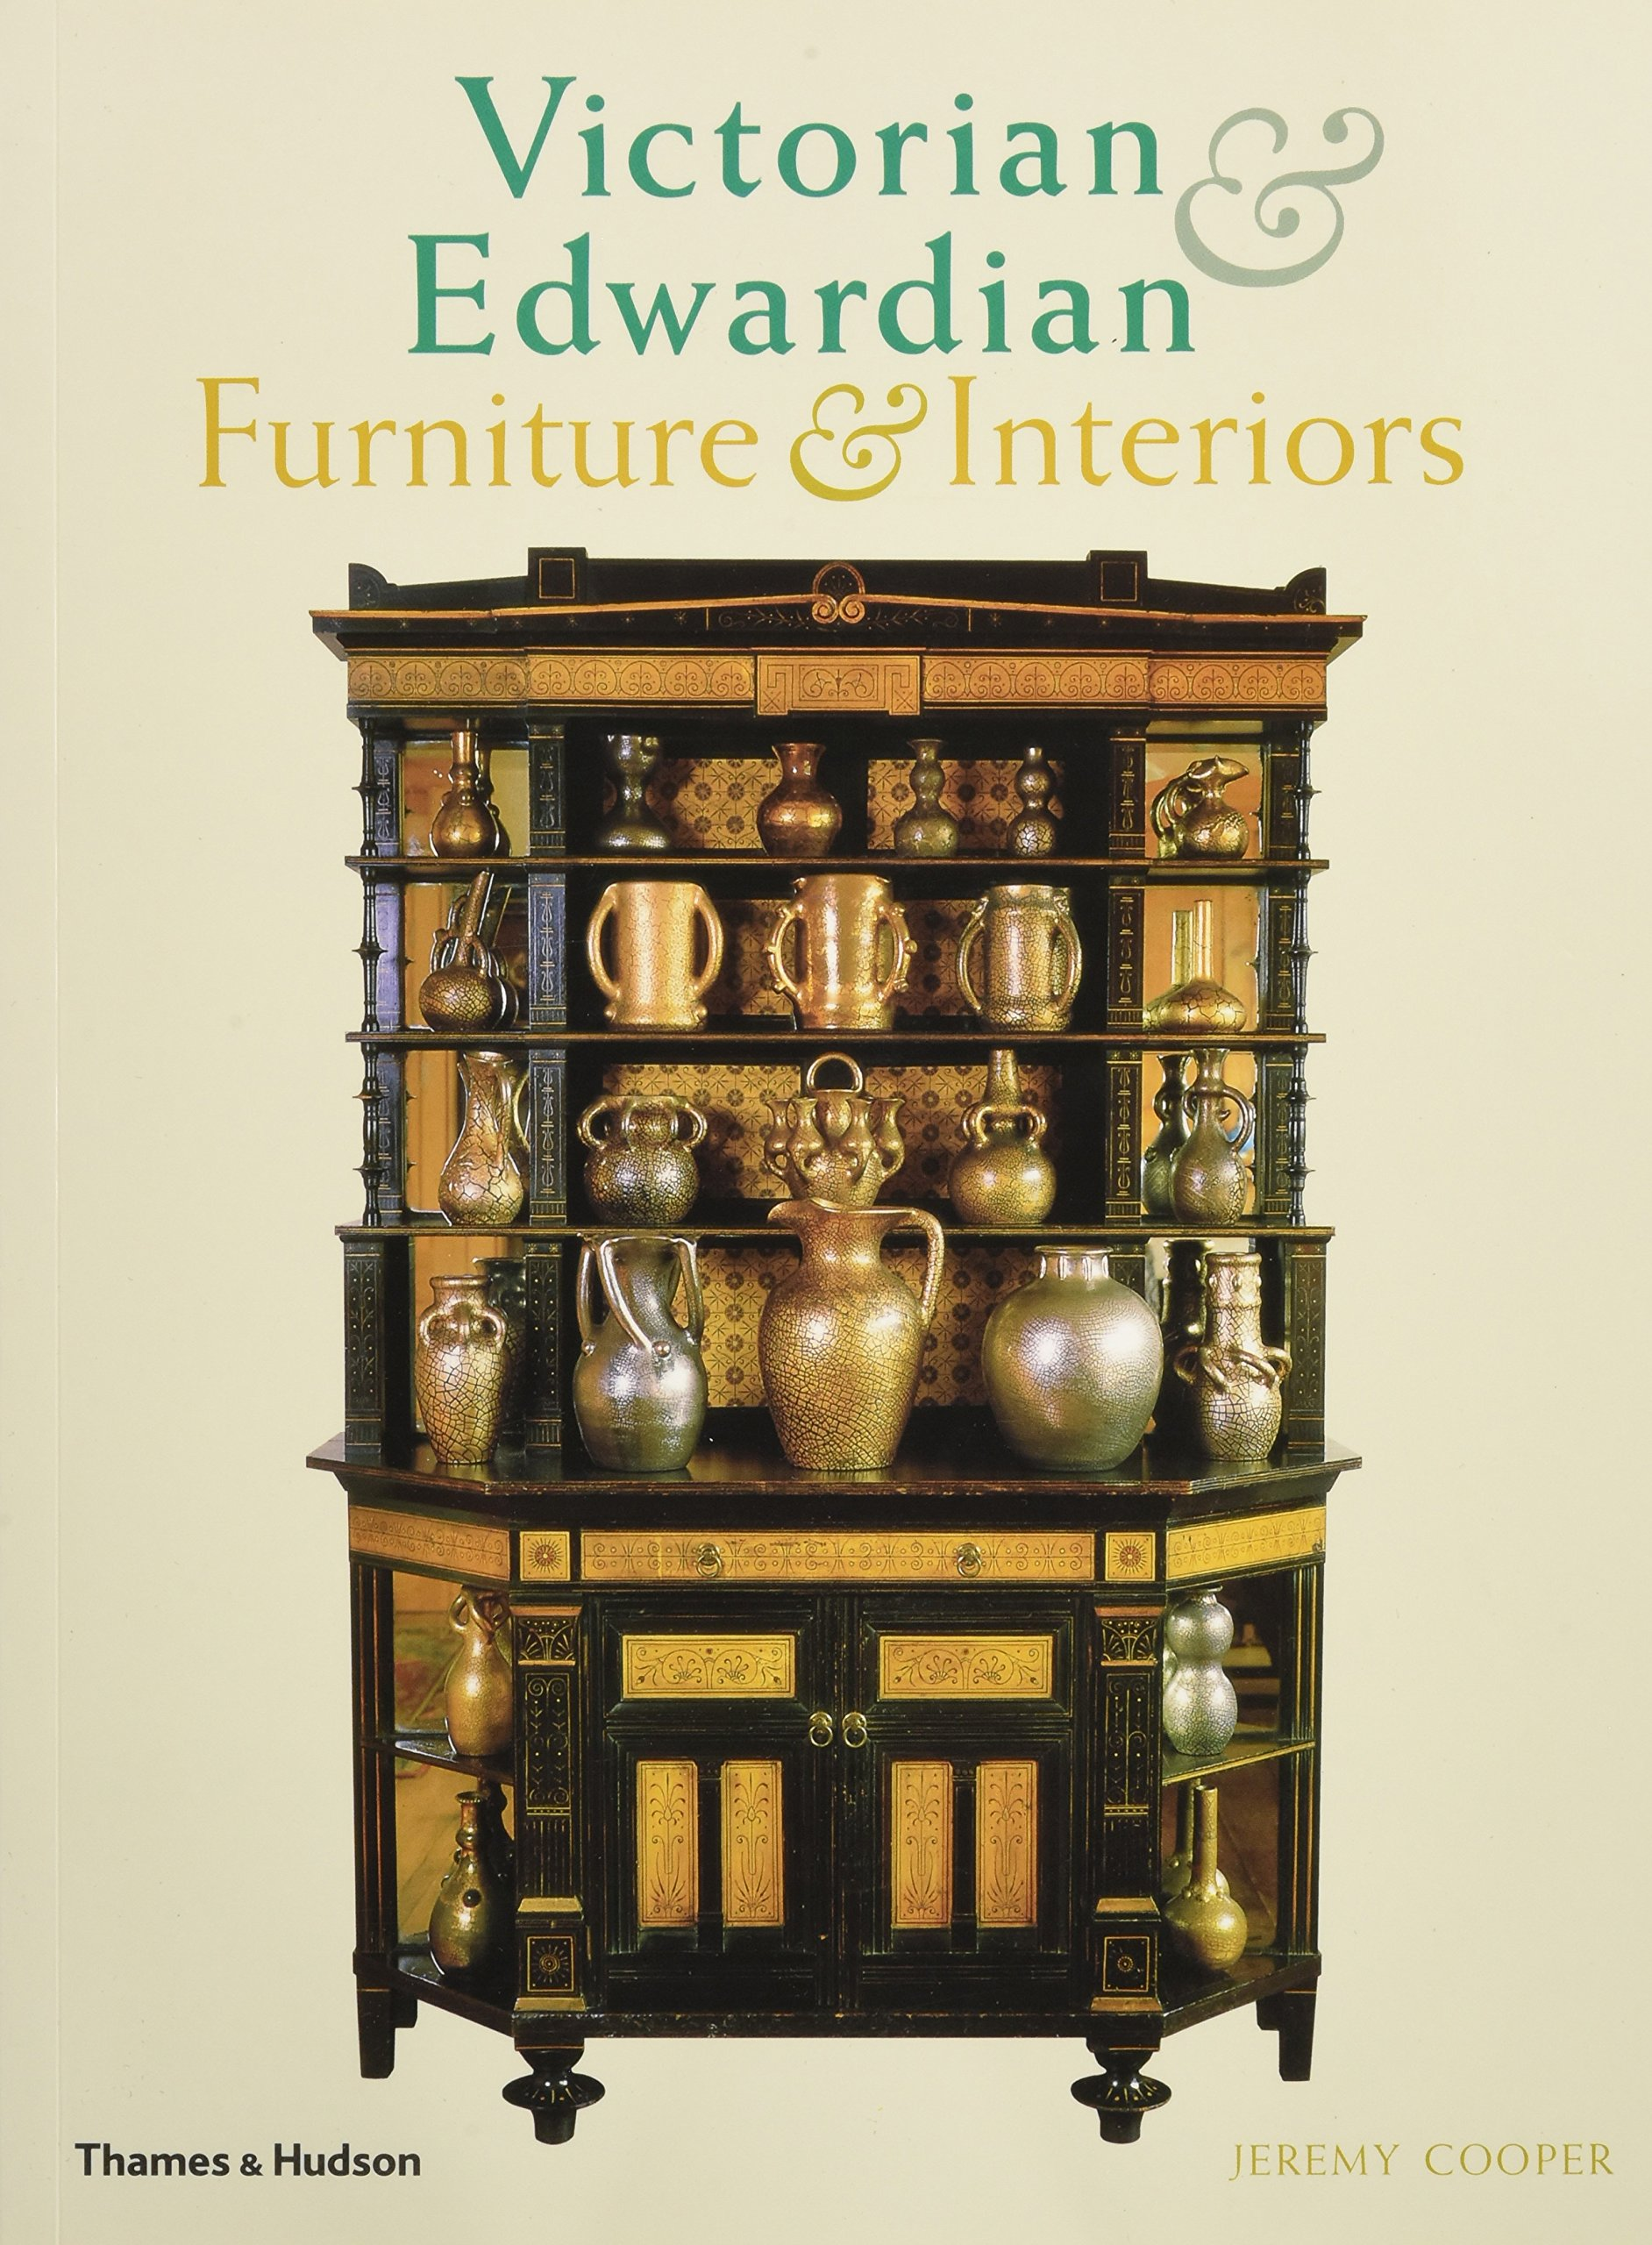 Victorian And Edwardian Furniture And Interiors: From The Gothic Revival To  Art Nouveau: Amazon.co.uk: Jeremy Cooper: 9780500280225: Books